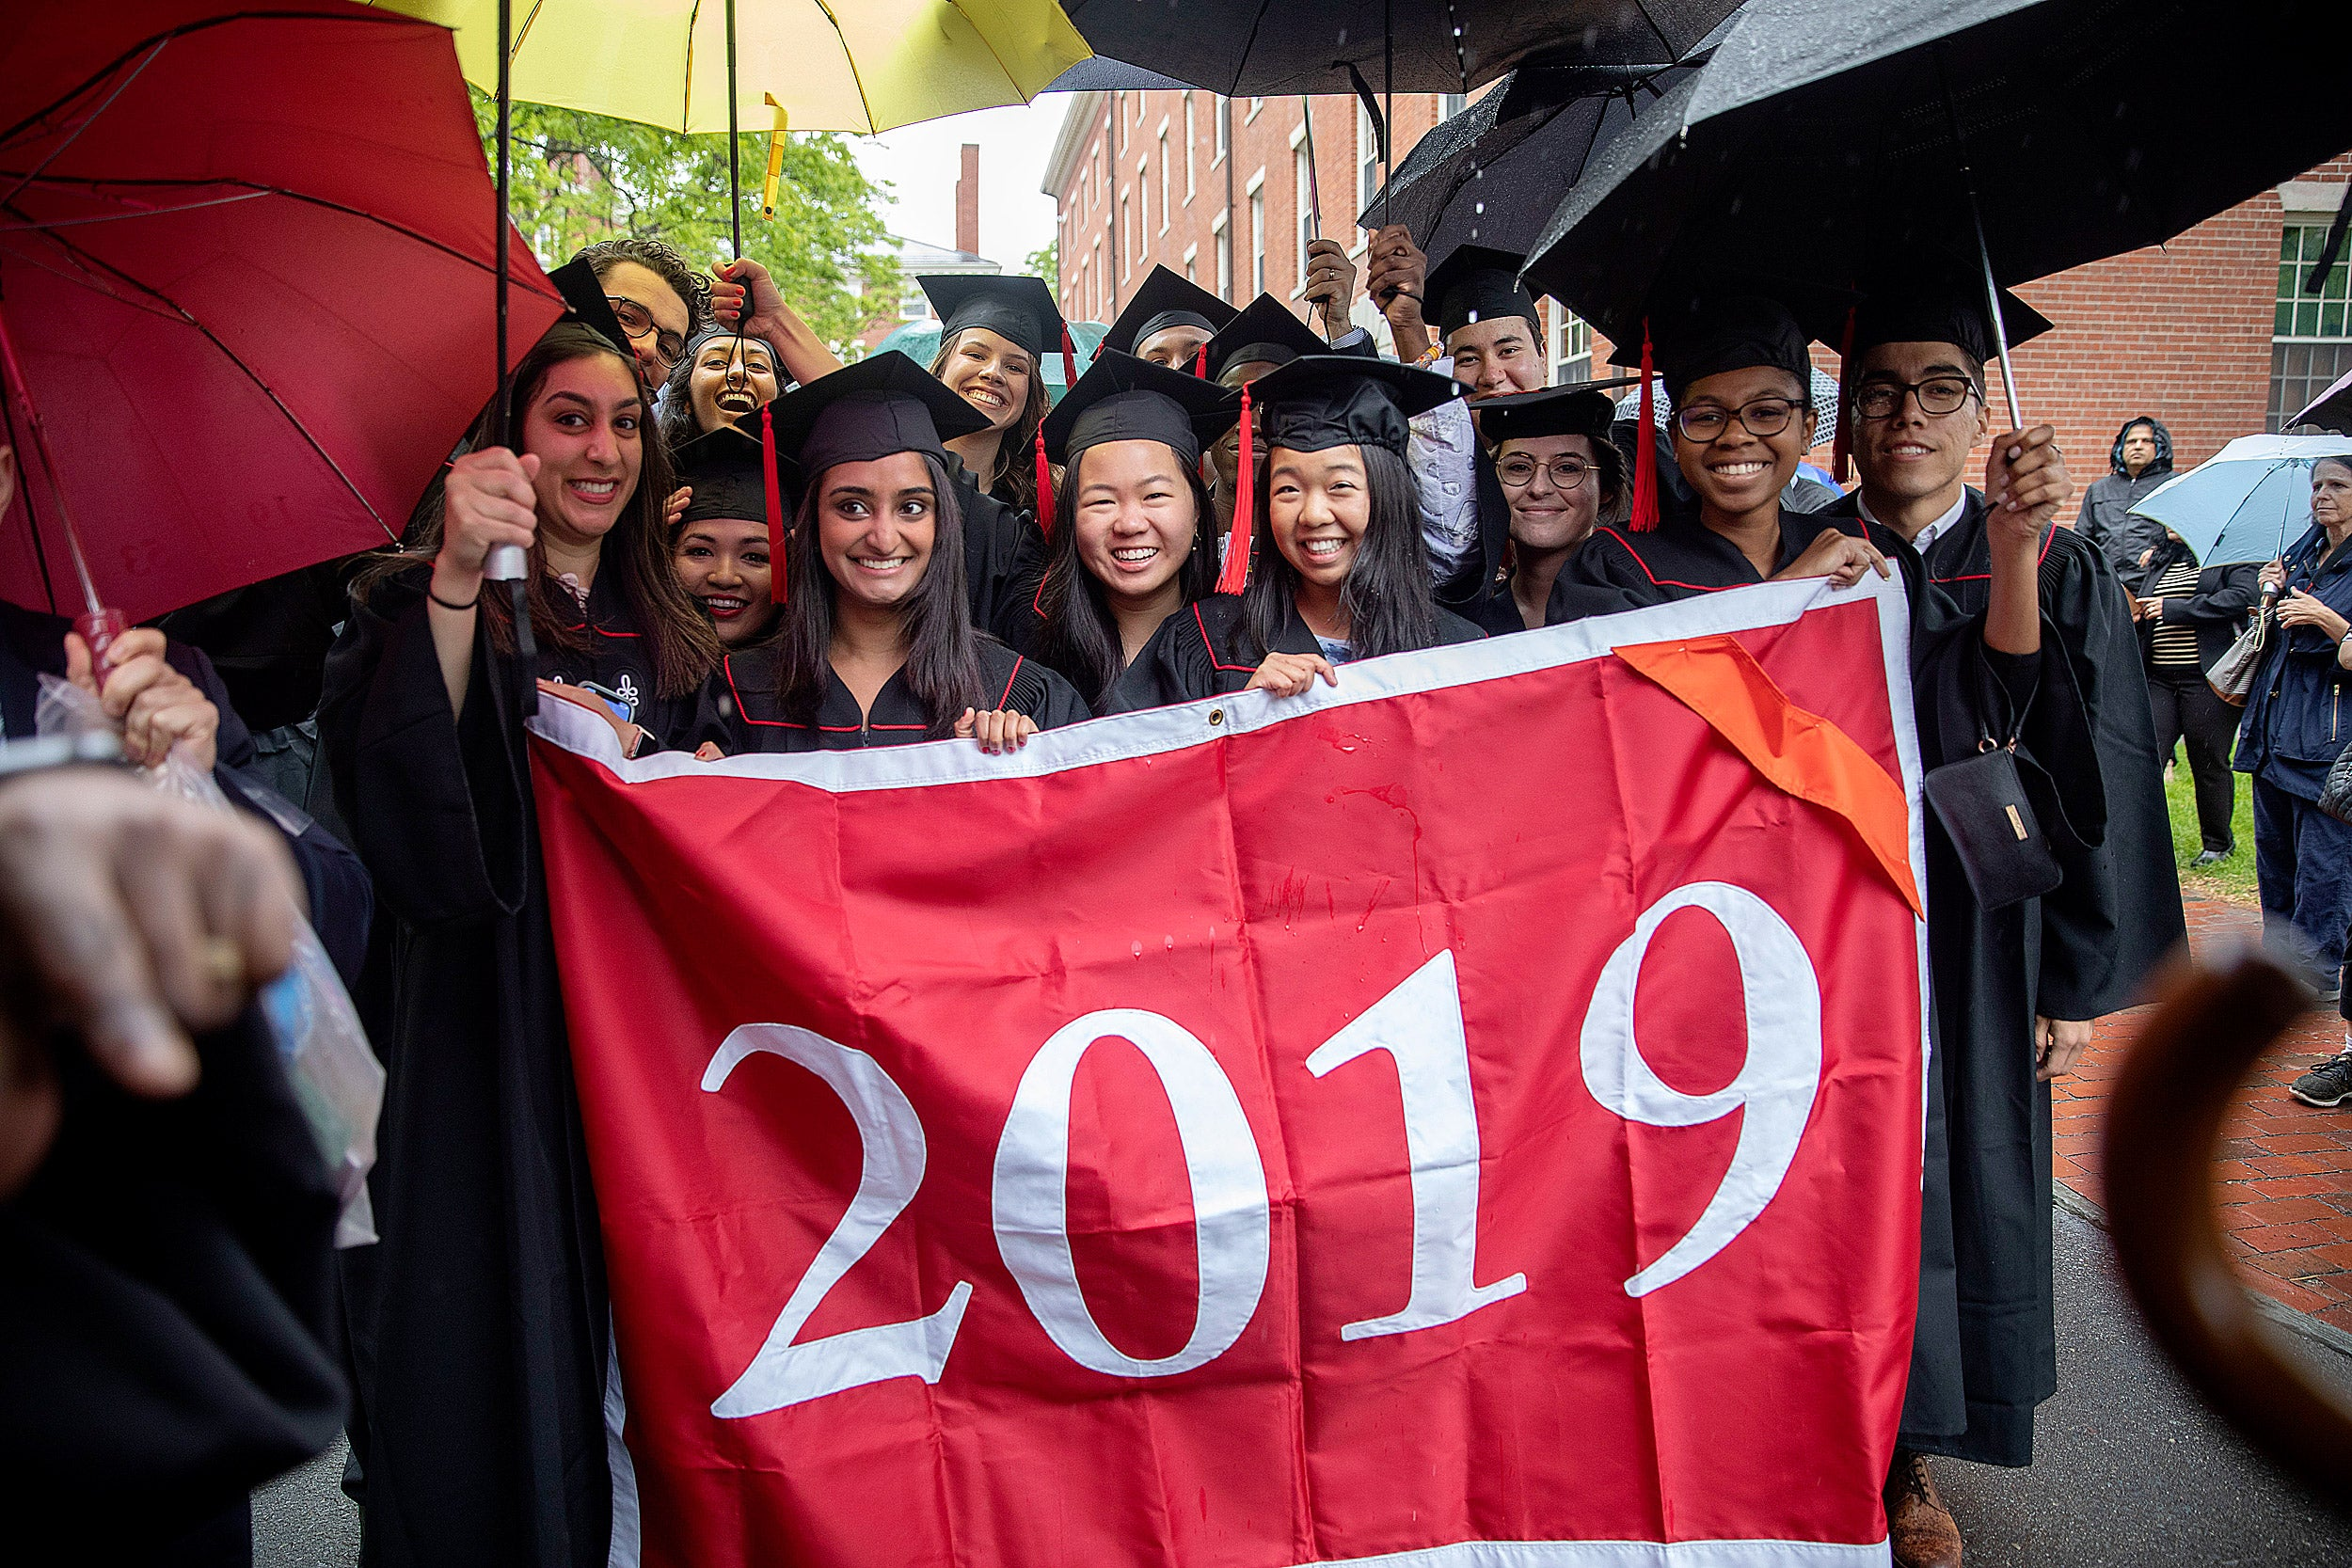 The Baccalaureate procession marches toward Memorial Church holding a 2019 banner and umbrellas.